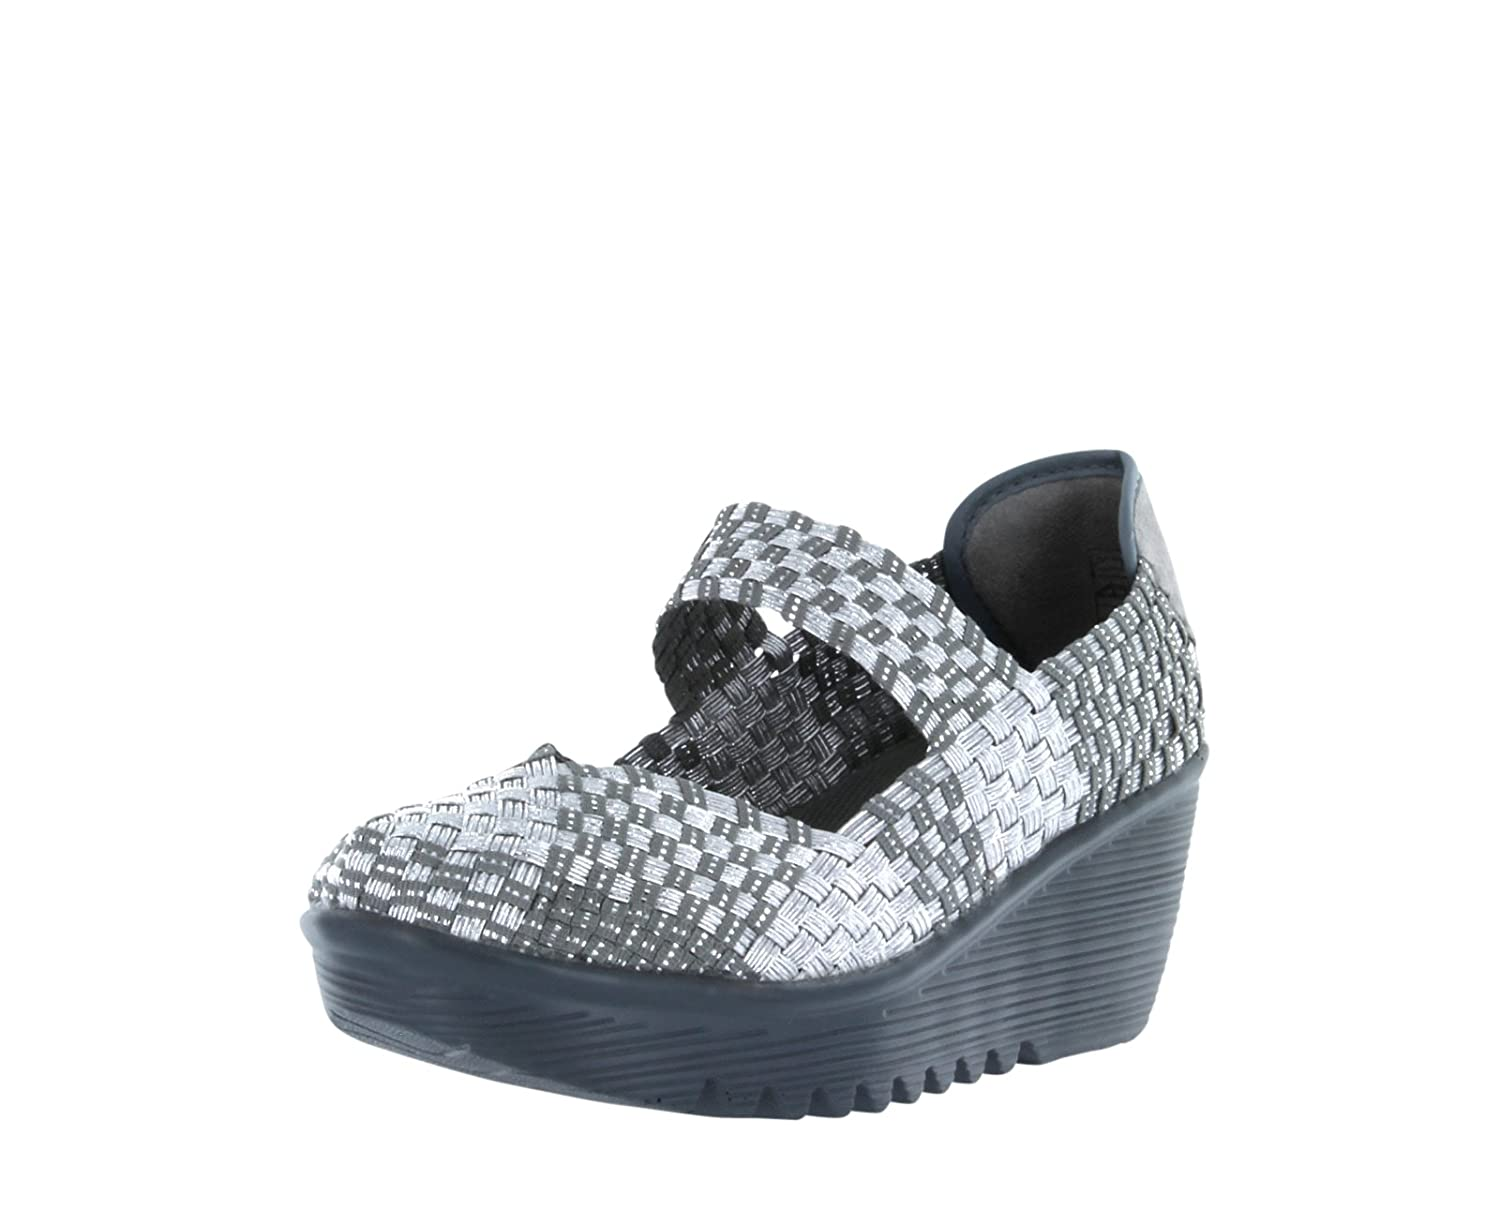 Silver Bernie Mev Women's Lulia Wedge Pump